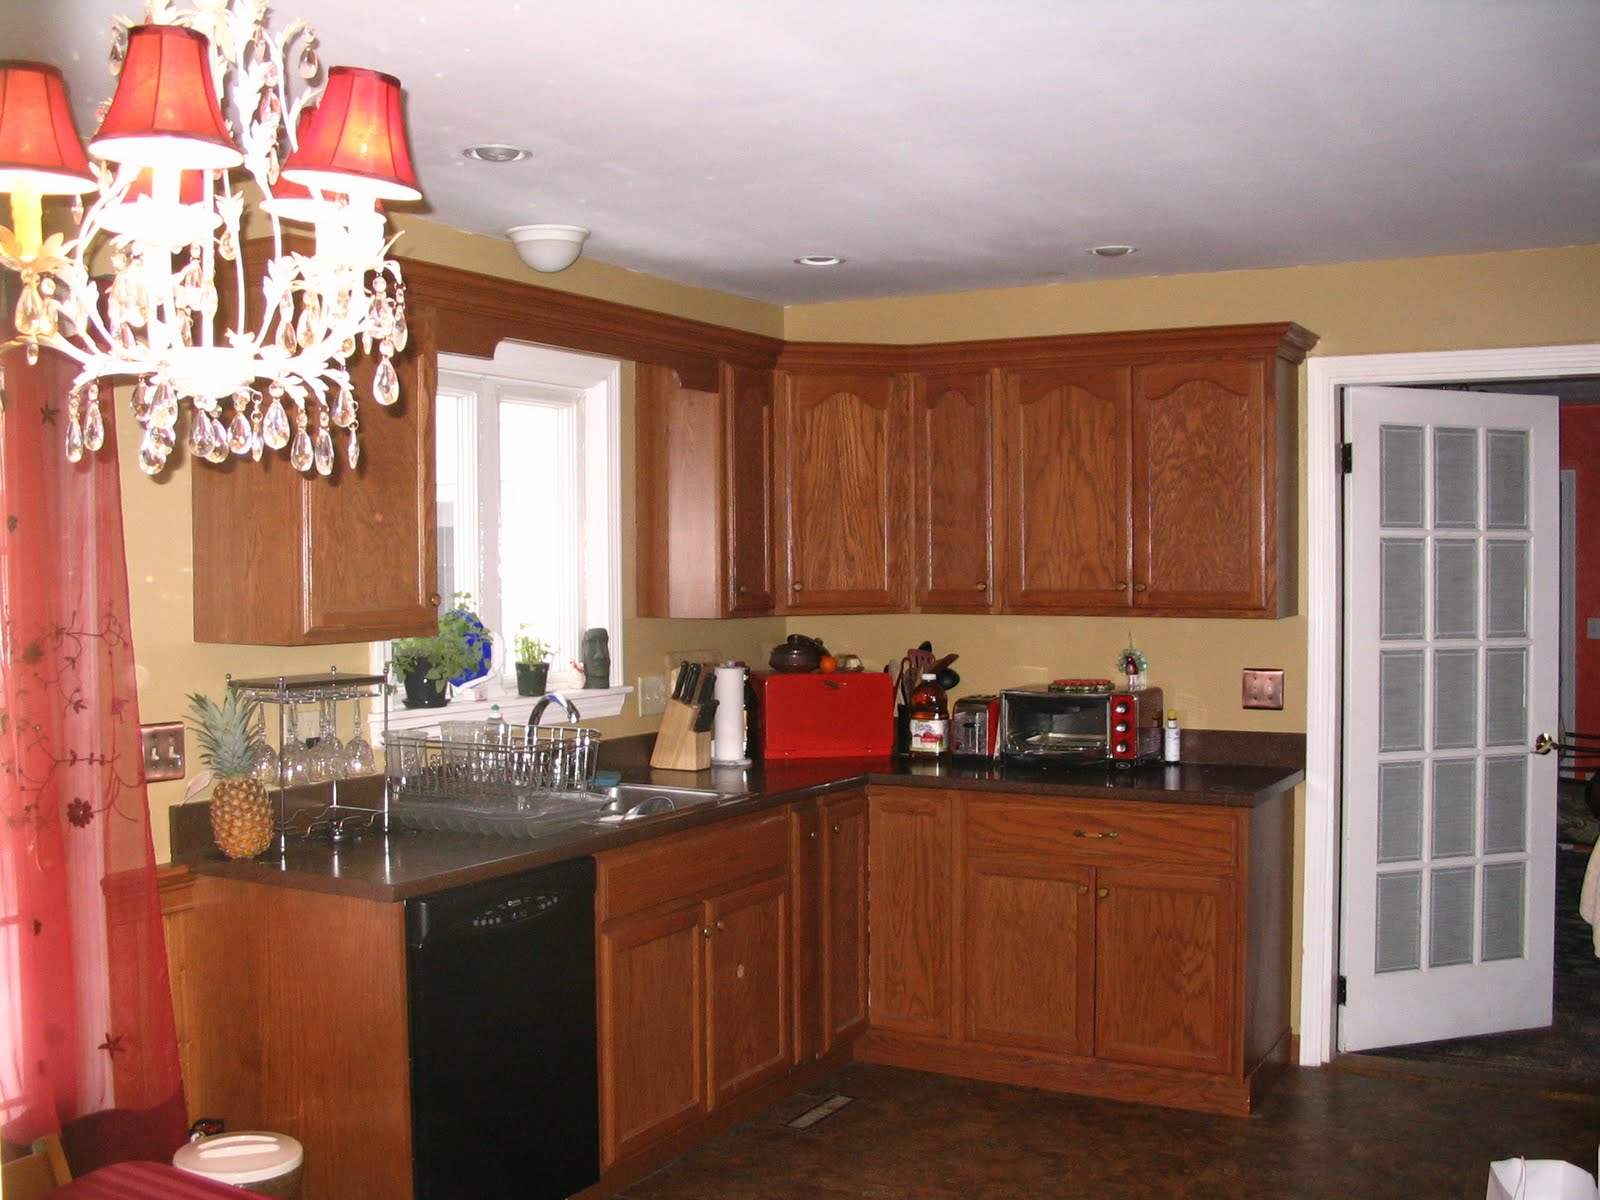 Light Oak Kitchen Cabinets Knives Reviews Photos Of Kitchens With Dark Hard Wood